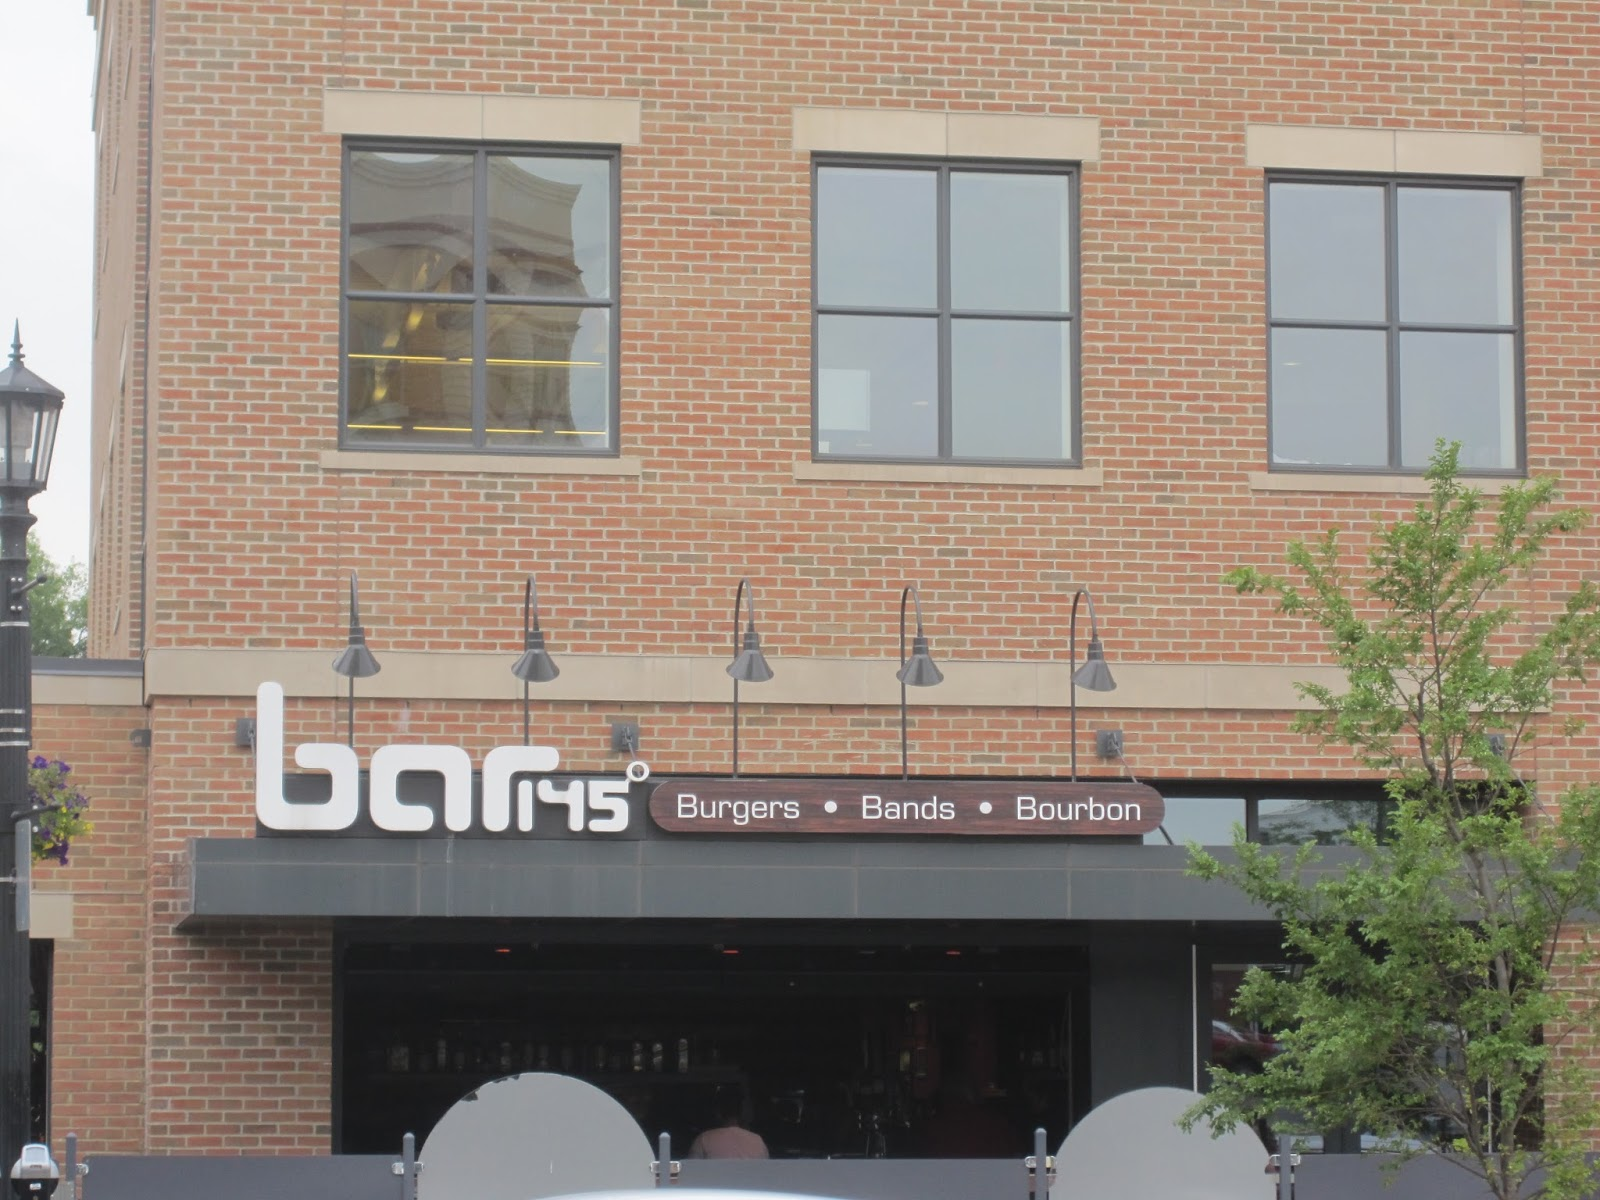 Bar 145 Is One Of Our Favorite Restaurants In Kent Ohio It S Located On Erie Street New Downtown Area There Plenty